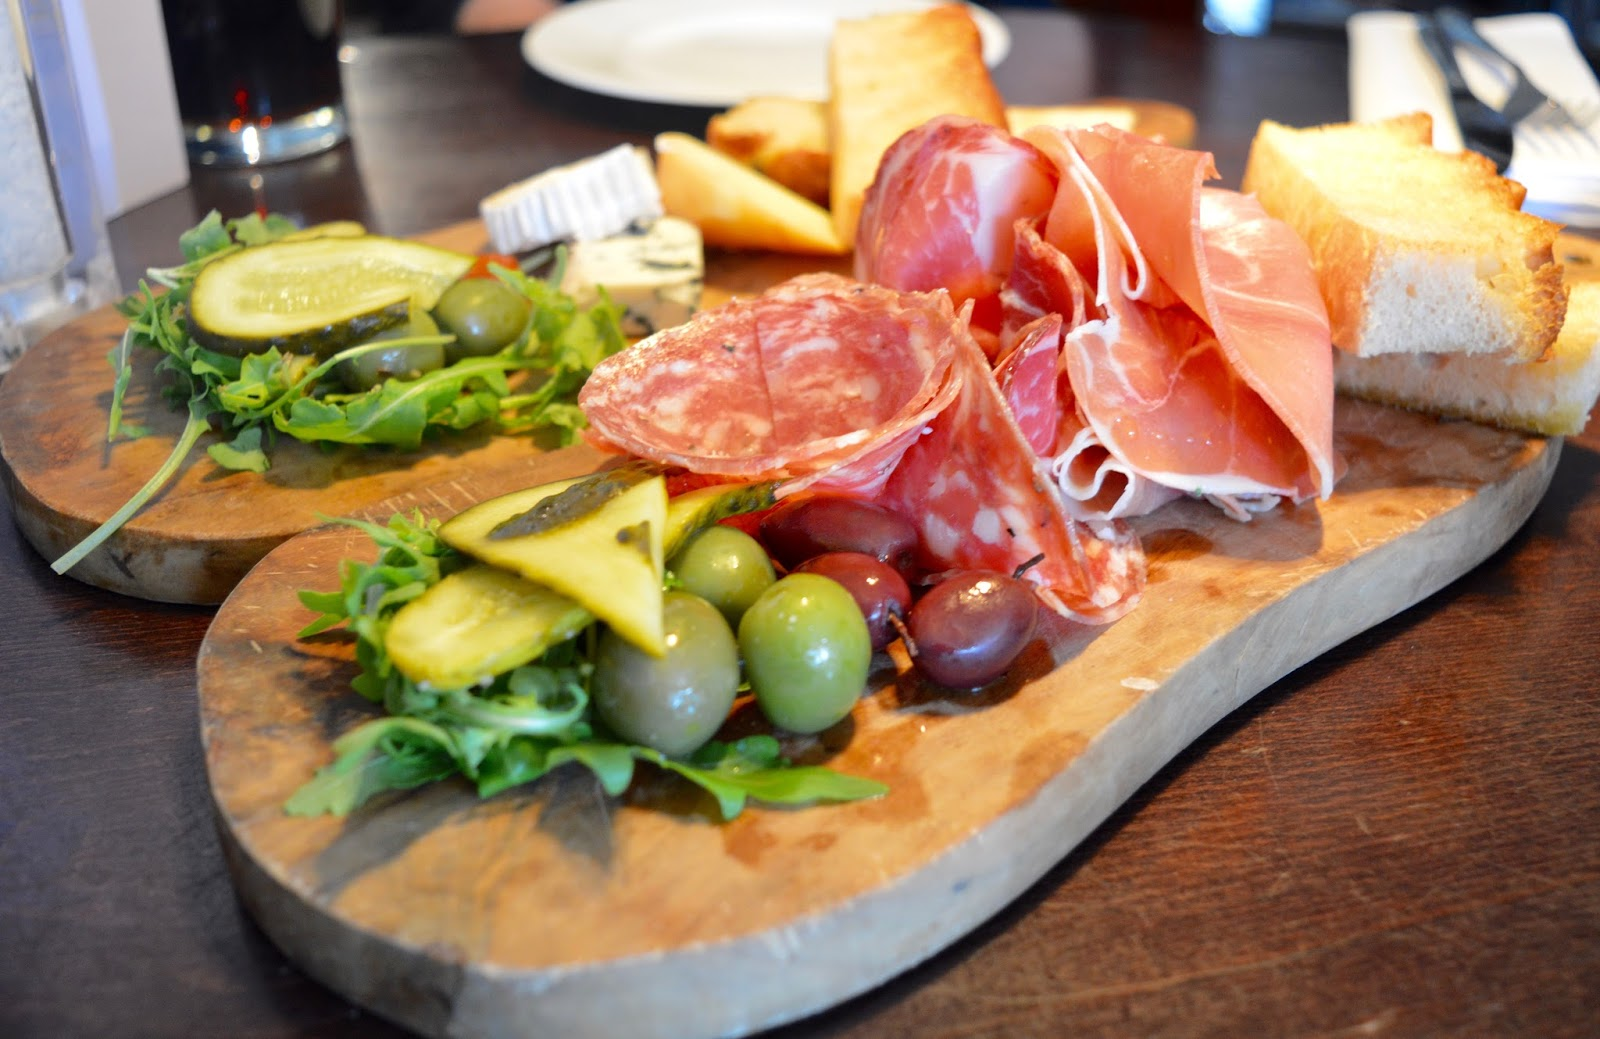 Comfort Food for Autumn at Gusto, Newcastle Quayside | A Review - Meat and Cheese Deli Board